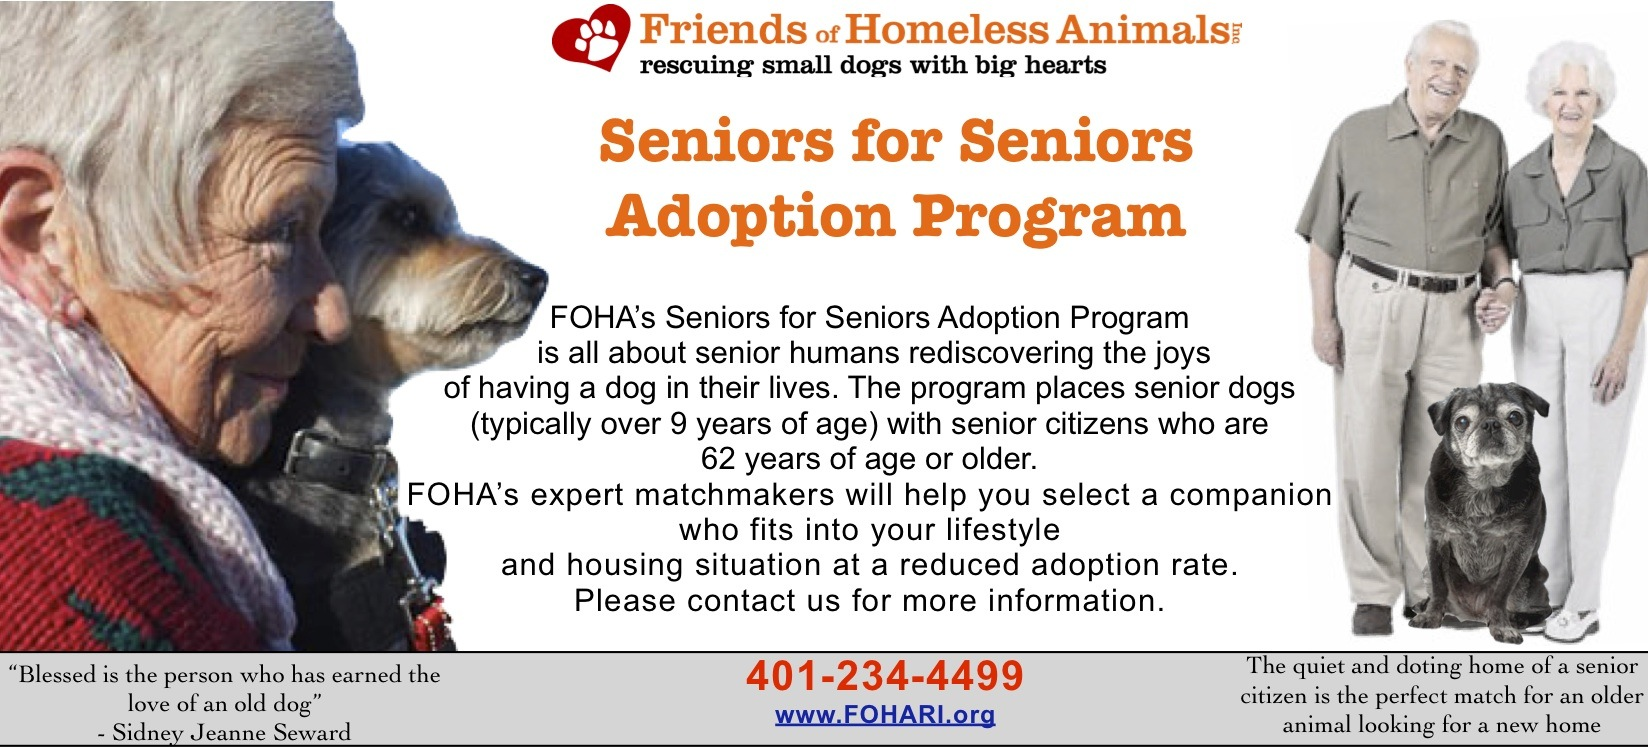 adopt a rescue dog 9 years or older. The Adoption Process still